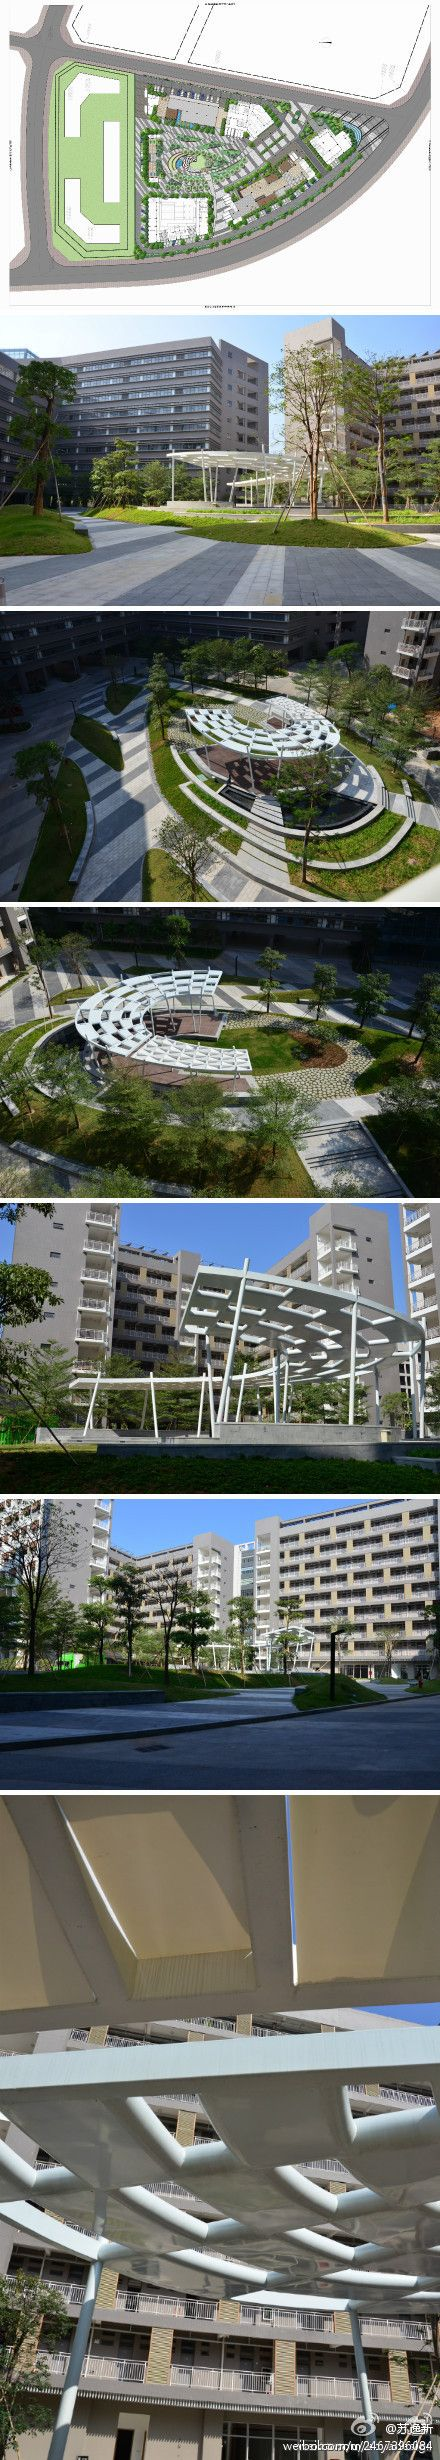 1000 Images About Urban On Pinterest Landscape Architecture